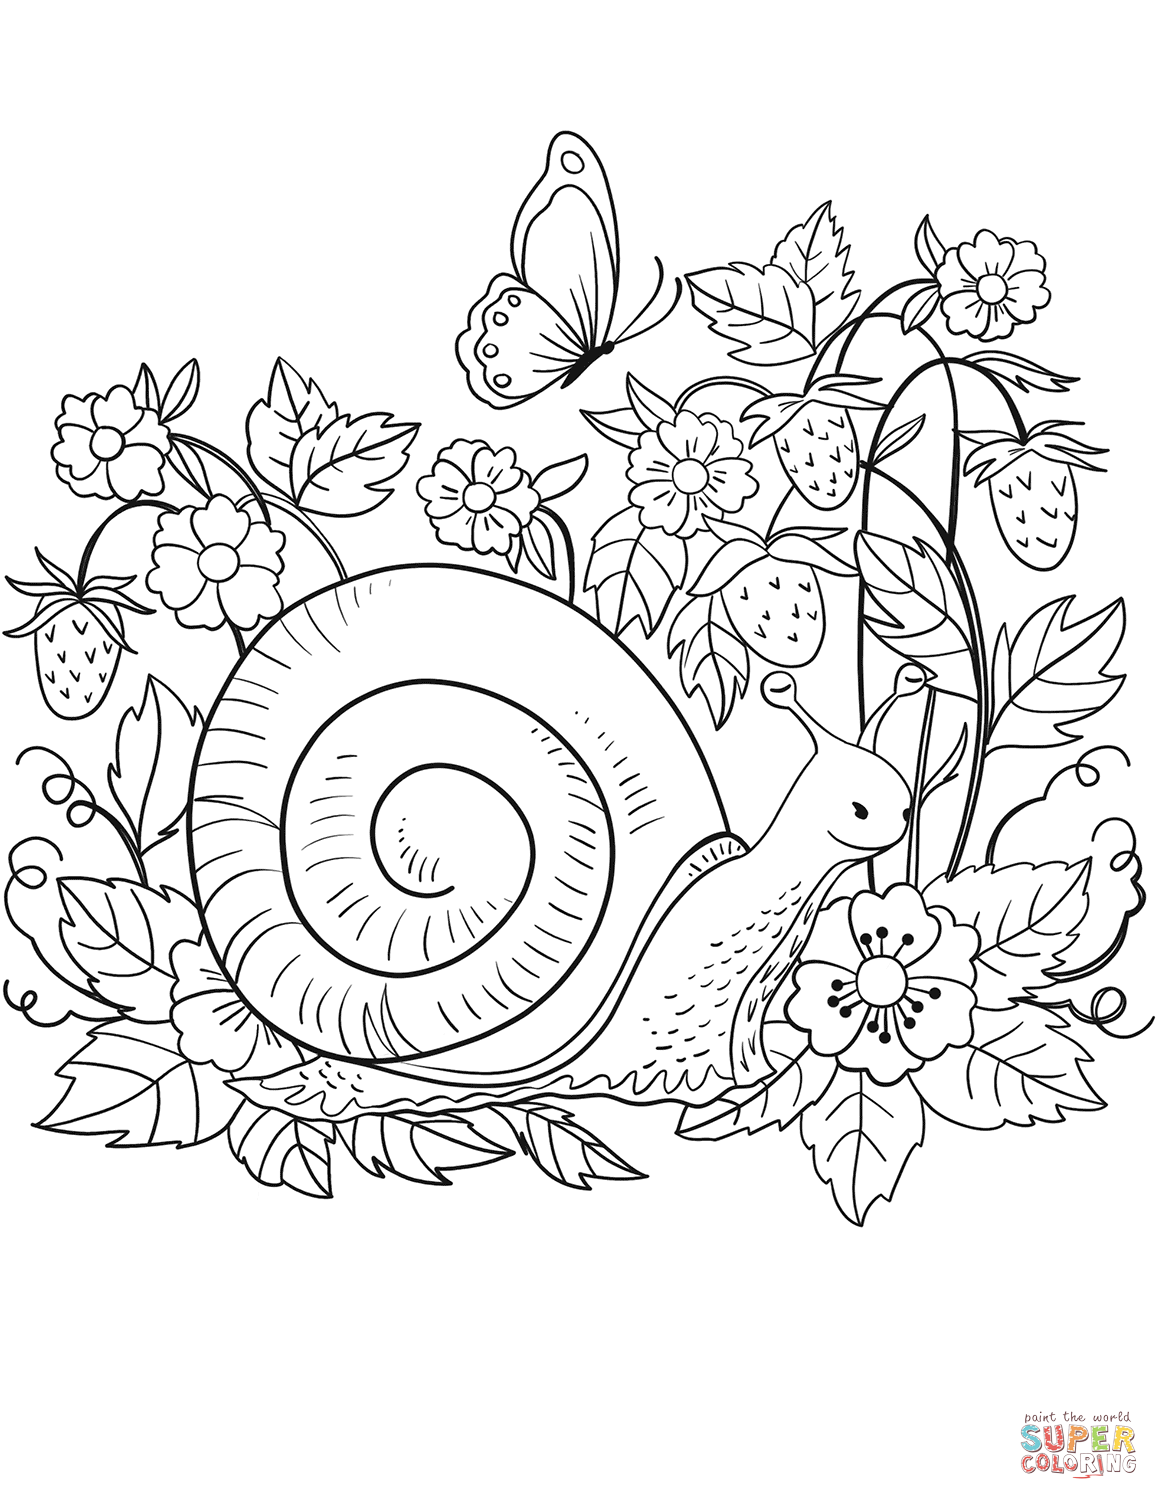 snail coloring page land snail coloring page sketch coloring page snail page coloring